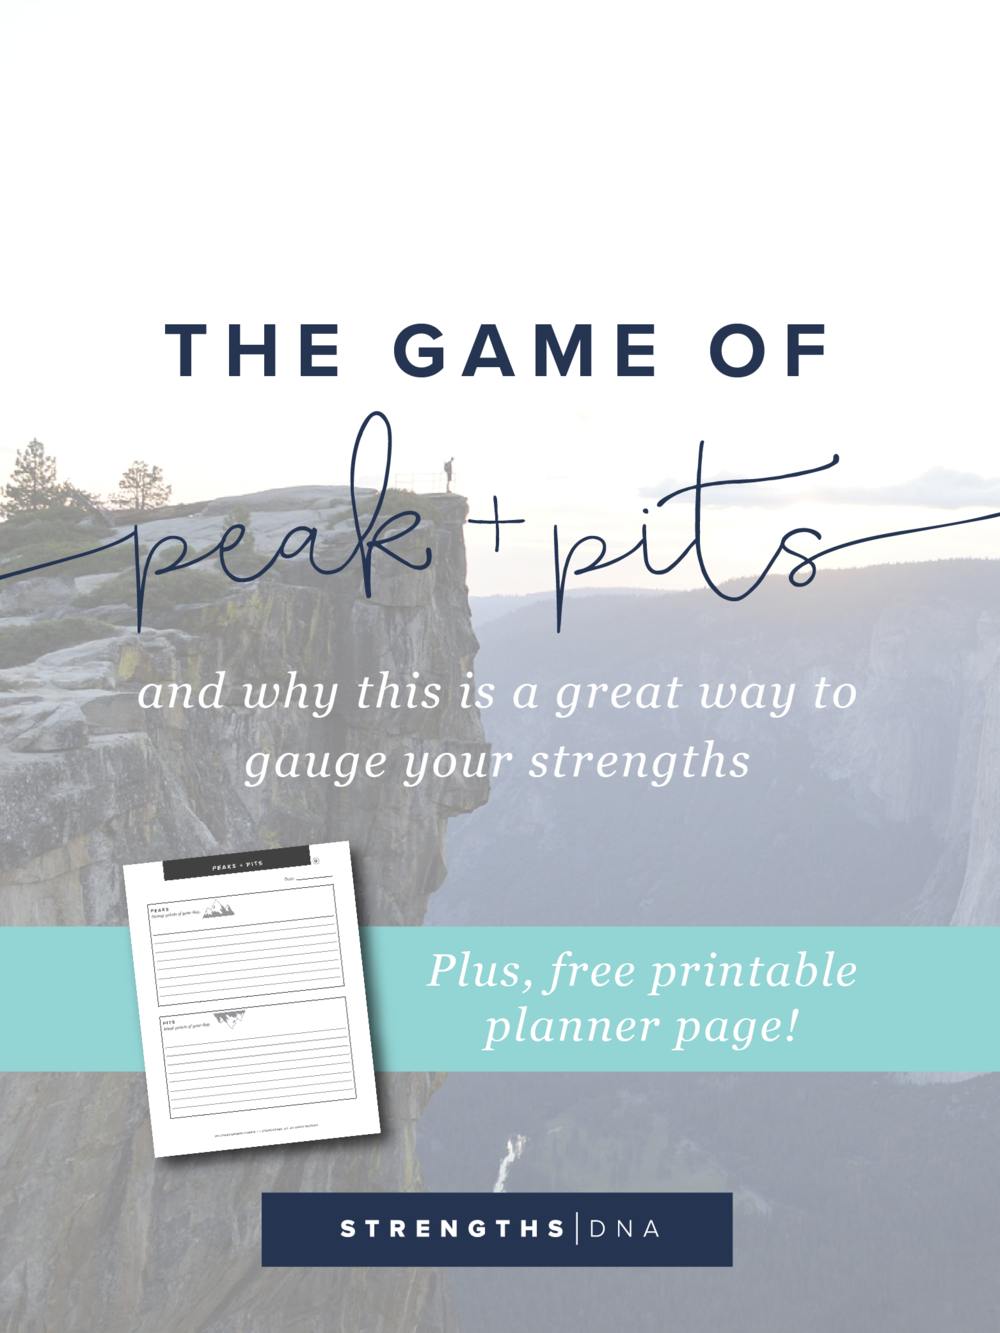 The Game of Pits & Peaks and Why This is a Great Way to Gauge Your Strengths + Free Printable